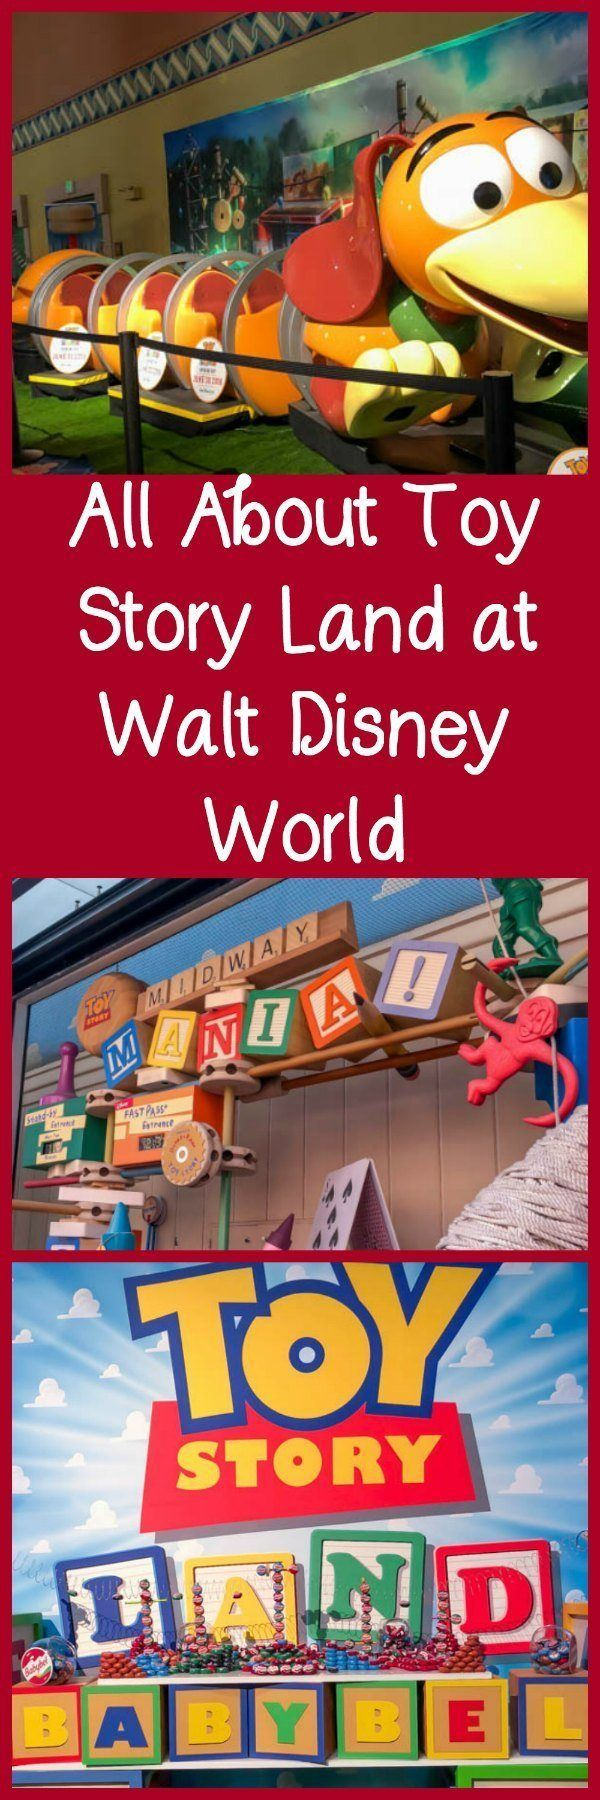 All About Toy Story Land at Walt Disney World including attractions, food, and opening date. #disneypartner #disneyworld #toystoryland